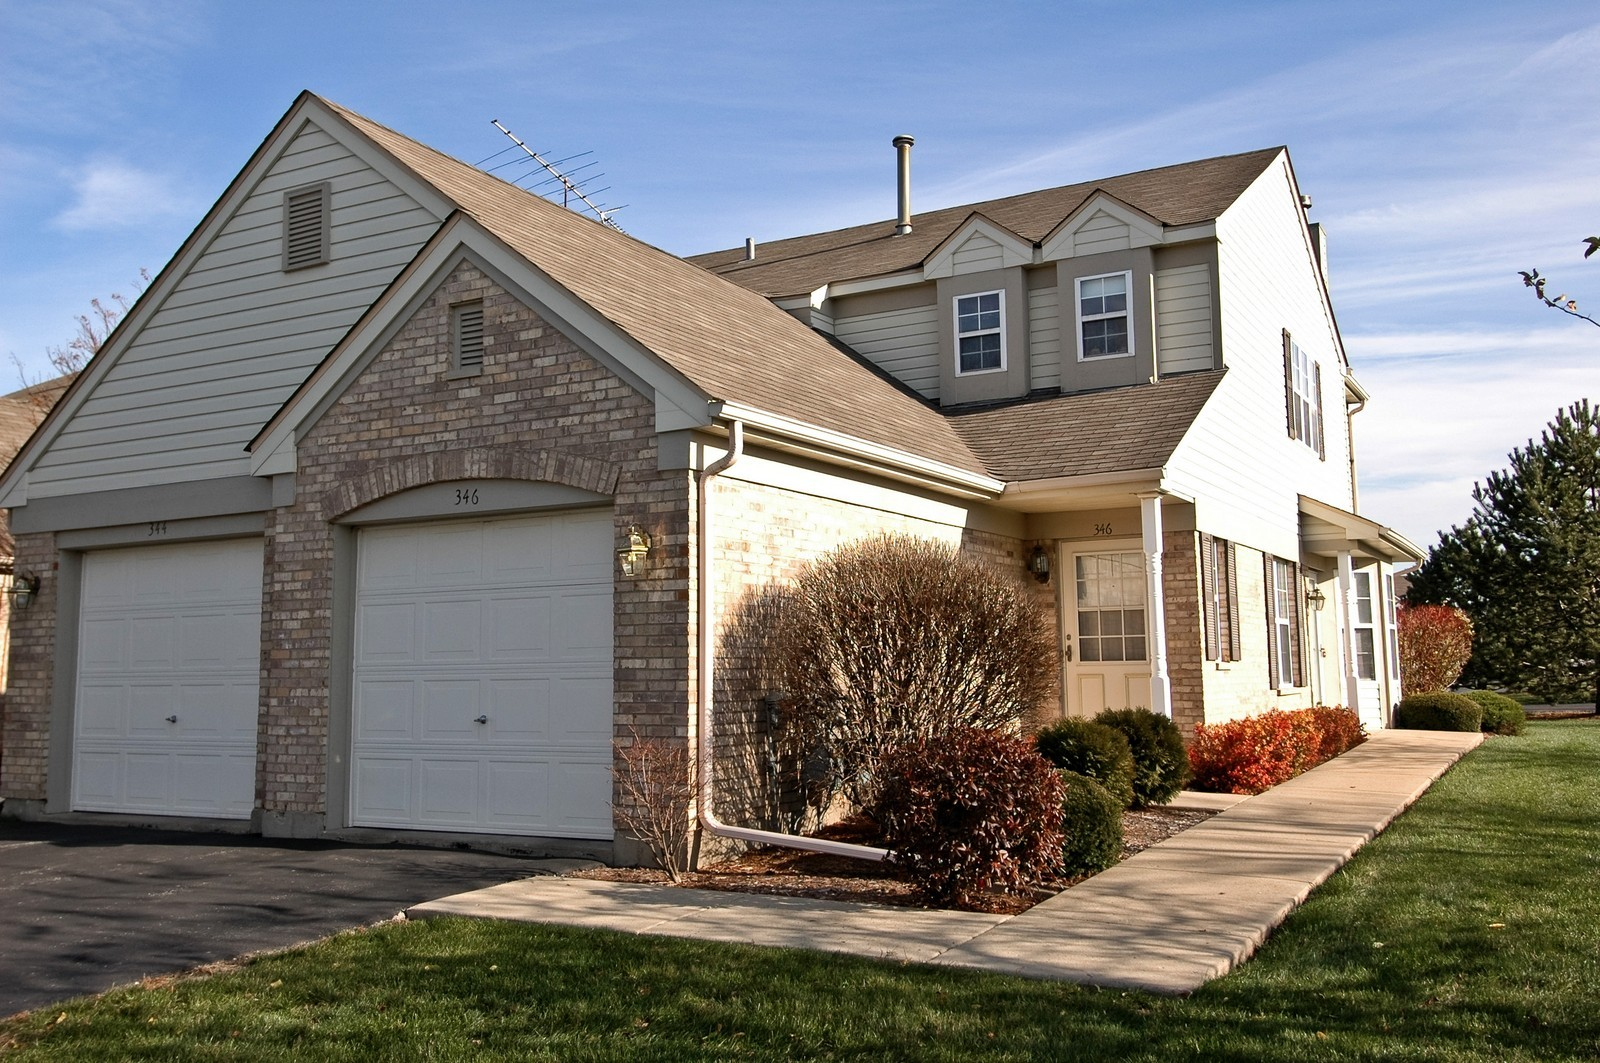 Real Estate Photography - 346 Crystal Ridge, Crystal Lake, IL, 60014 - Front View